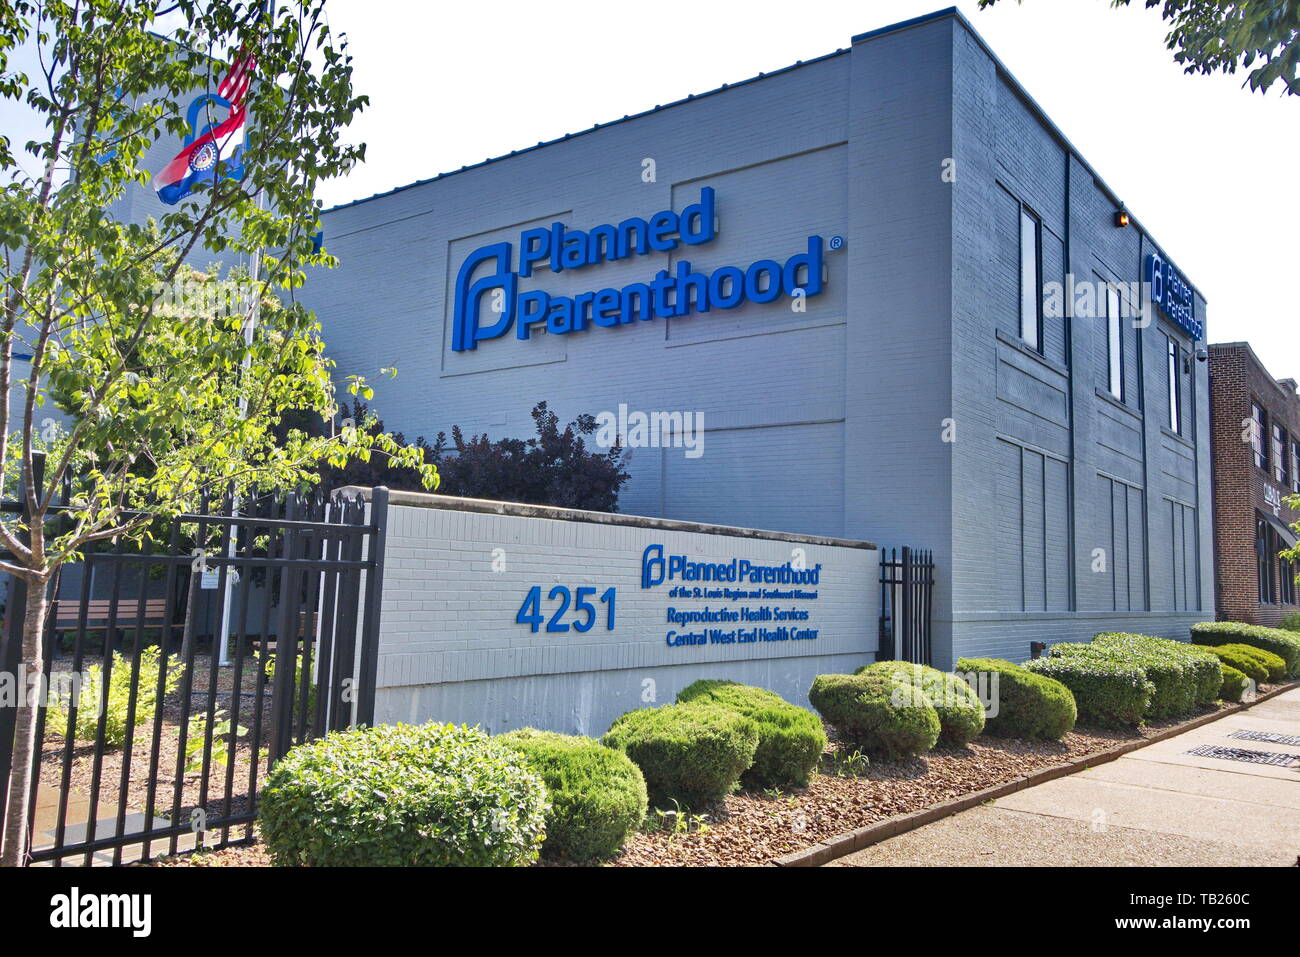 St. Louis, Missouri, USA. 29th May, 2019. Missouri could be the first state in the country to stop providing abortions if the last abortion clinic in Missouri, Planned Parenthood in St. Louis, closes at the end of the week. Credit: Steve Pellegrino/ZUMA Wire/Alamy Live News Stock Photo